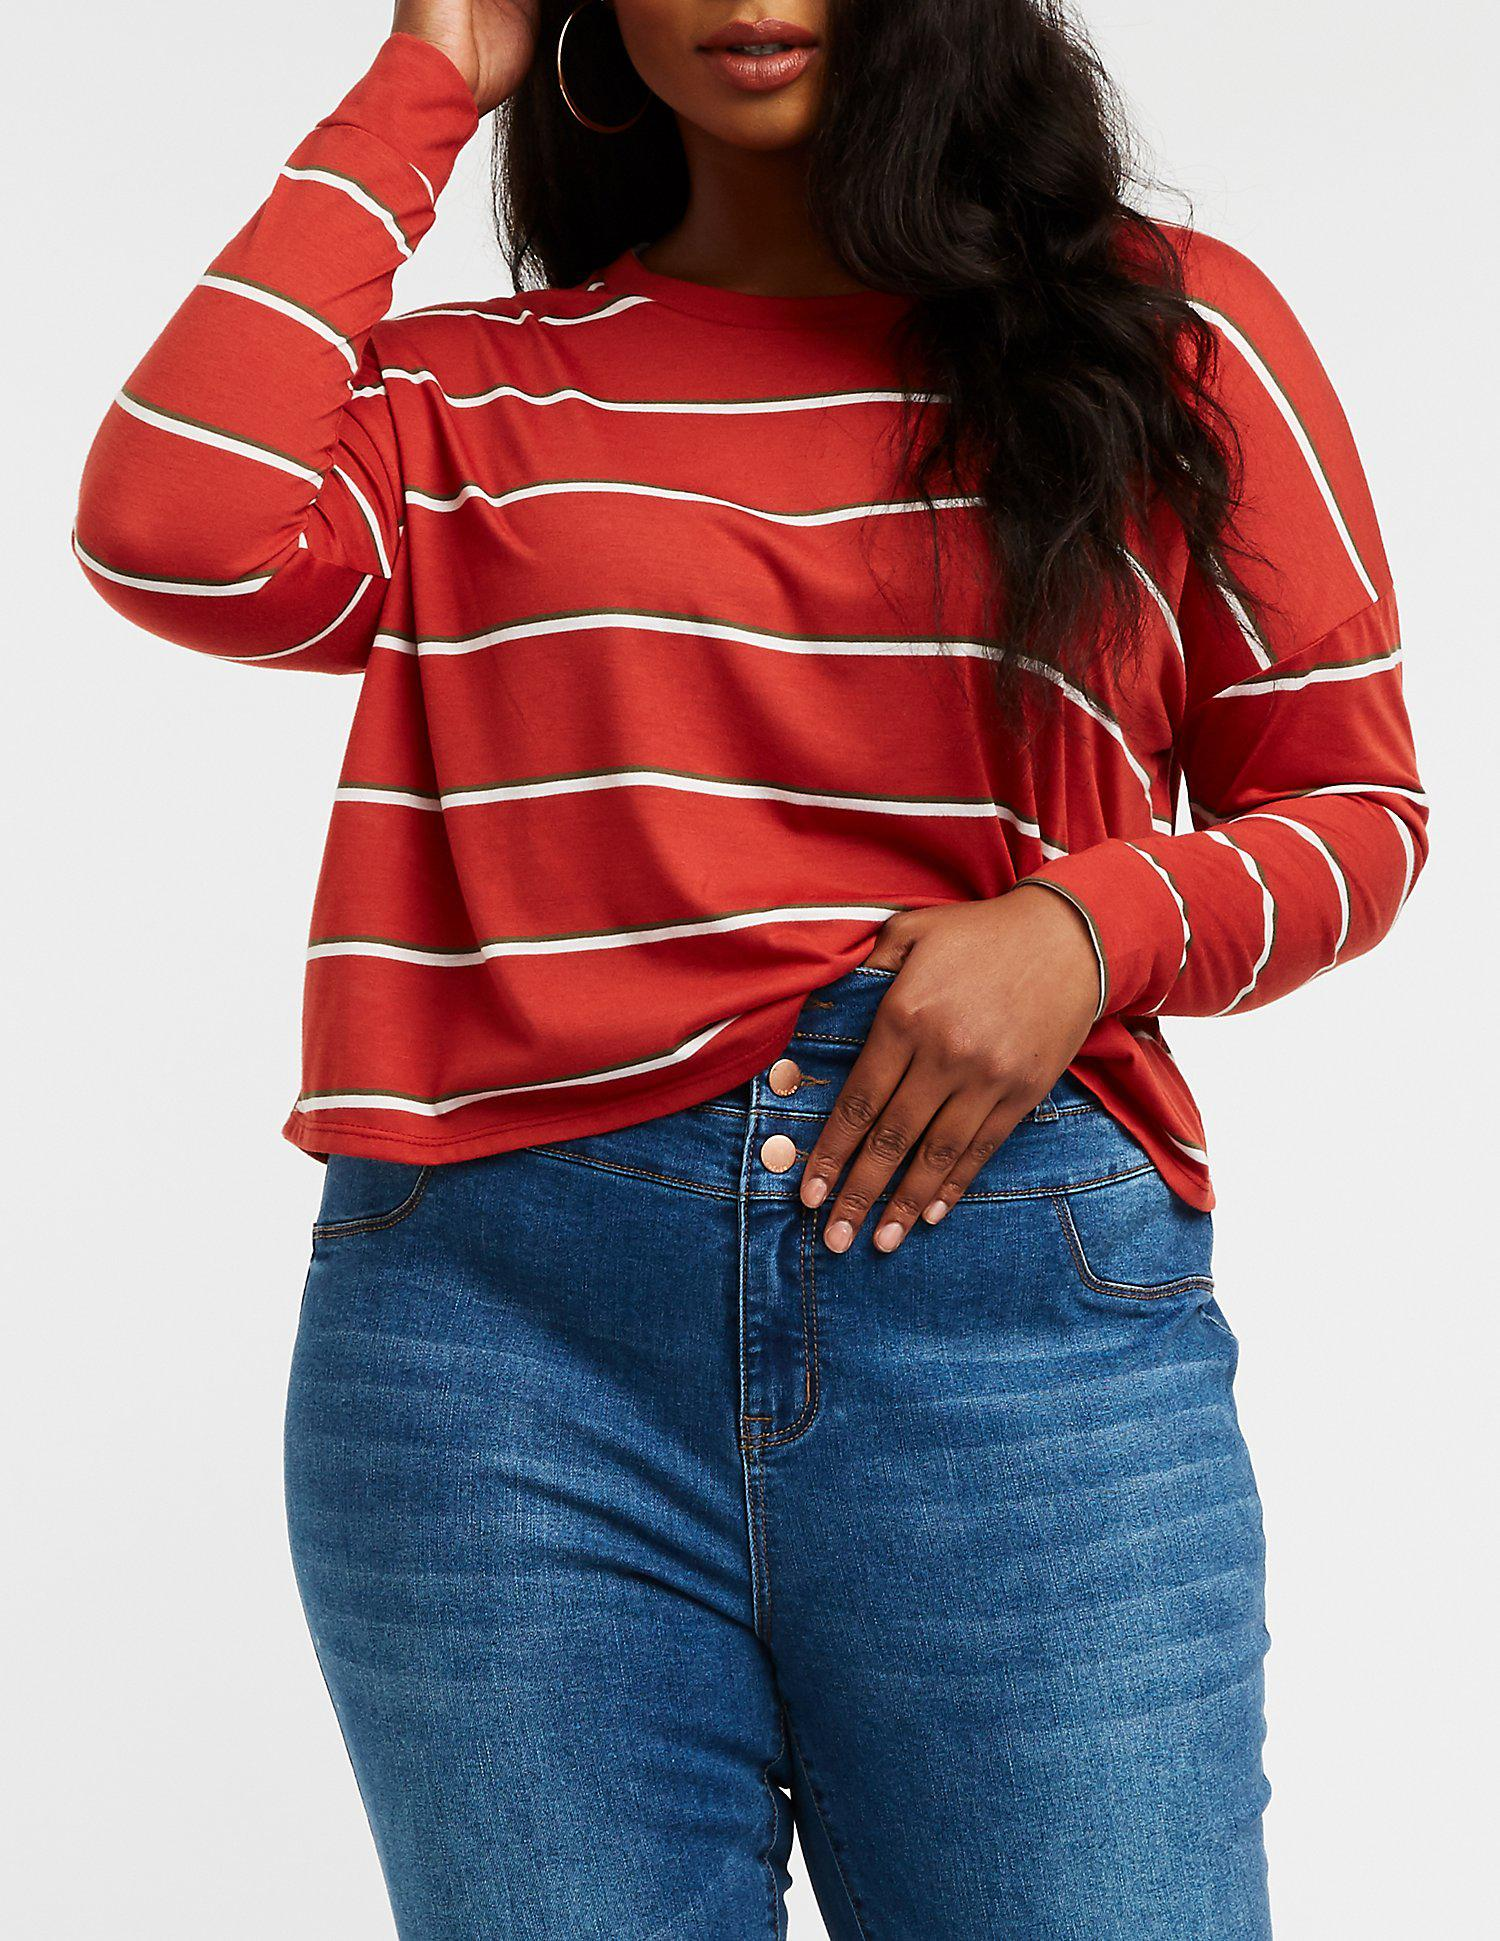 d5ade42eb8767e Lyst - Charlotte Russe Plus Size Striped Crop Top in Red